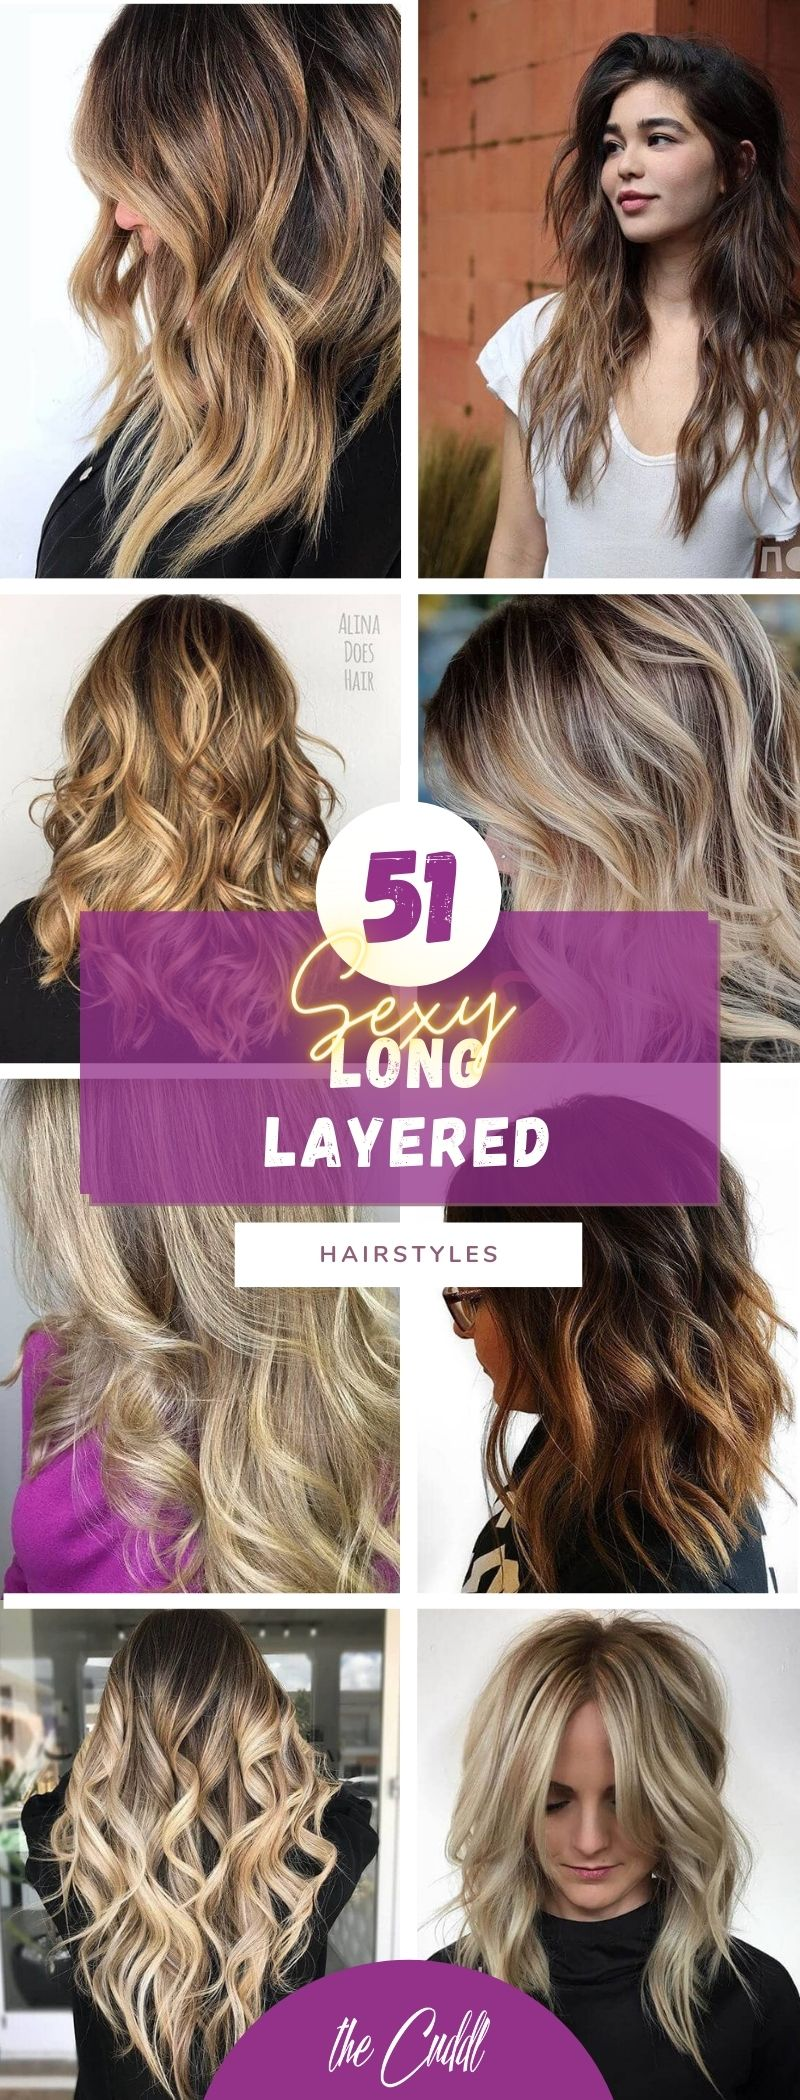 50 Flirty Long Layered Hair Ideas That Provides Endless Styling Options